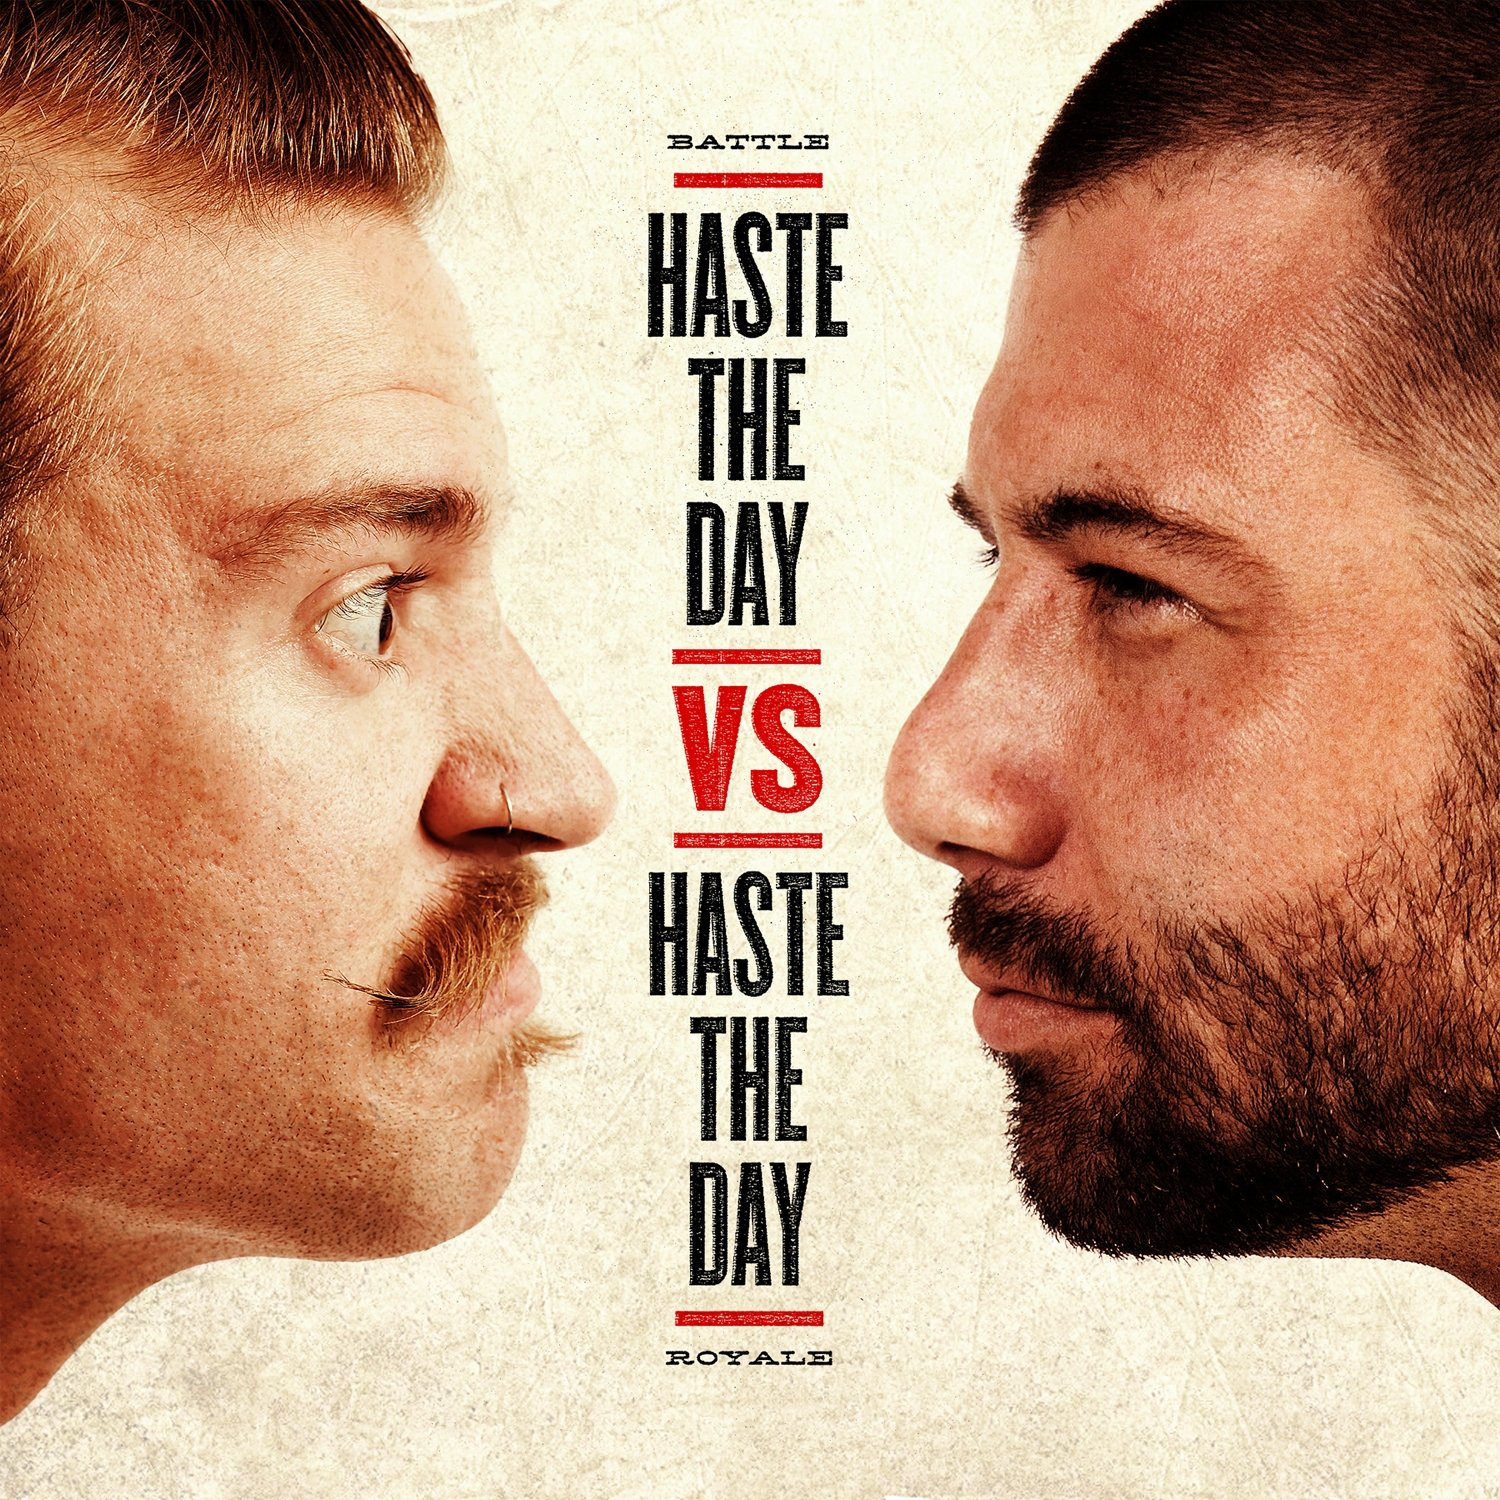 Haste the Day Vs Haste the Day by Solid State Records